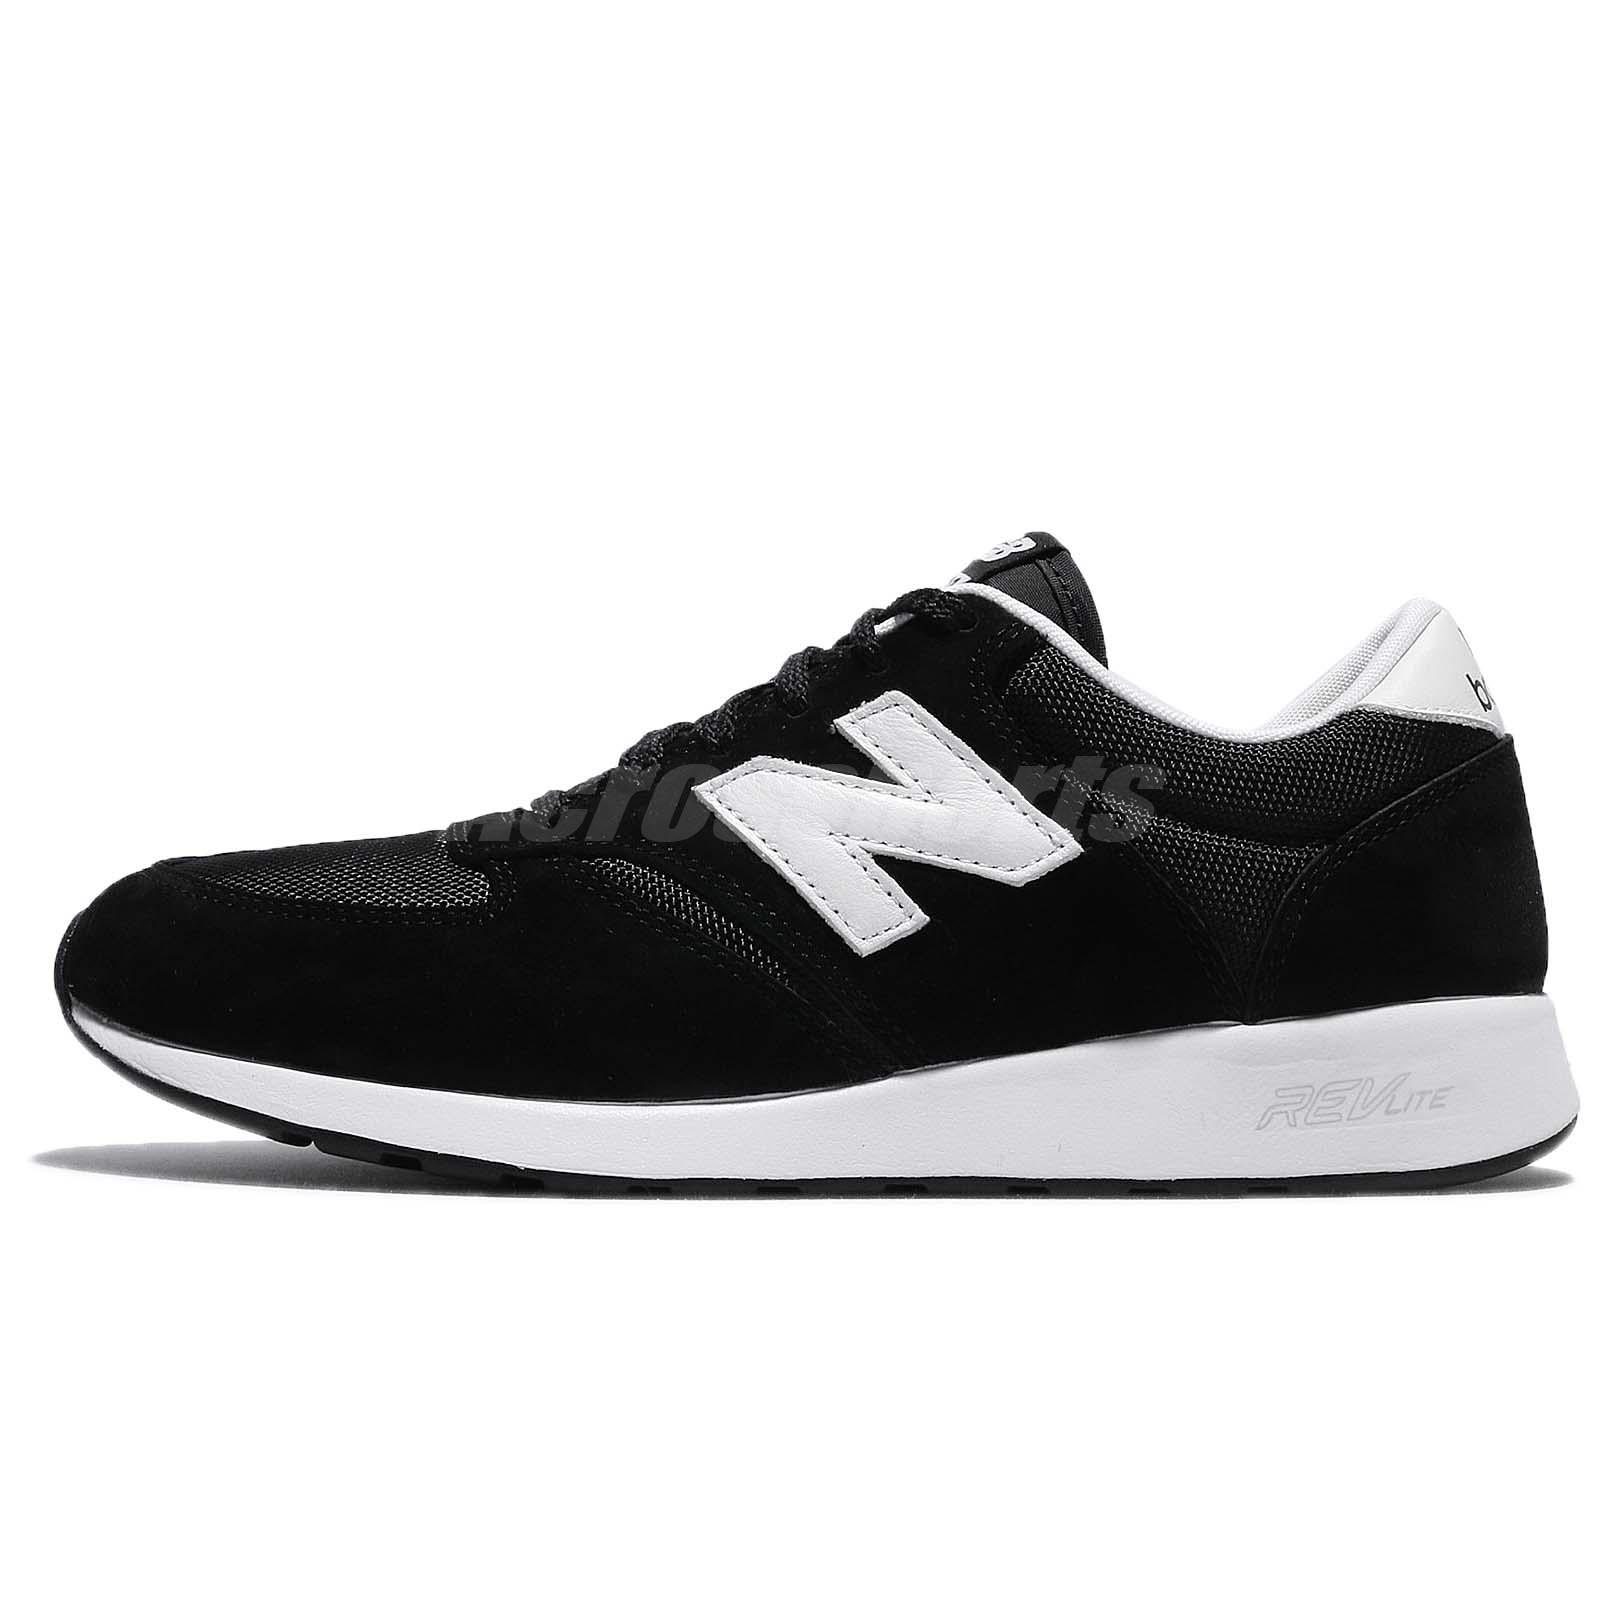 2aeedf80ed New Balance MRL420SZ D Black White Mens Running Shoes NB 420 RevLite  MRL420SZD